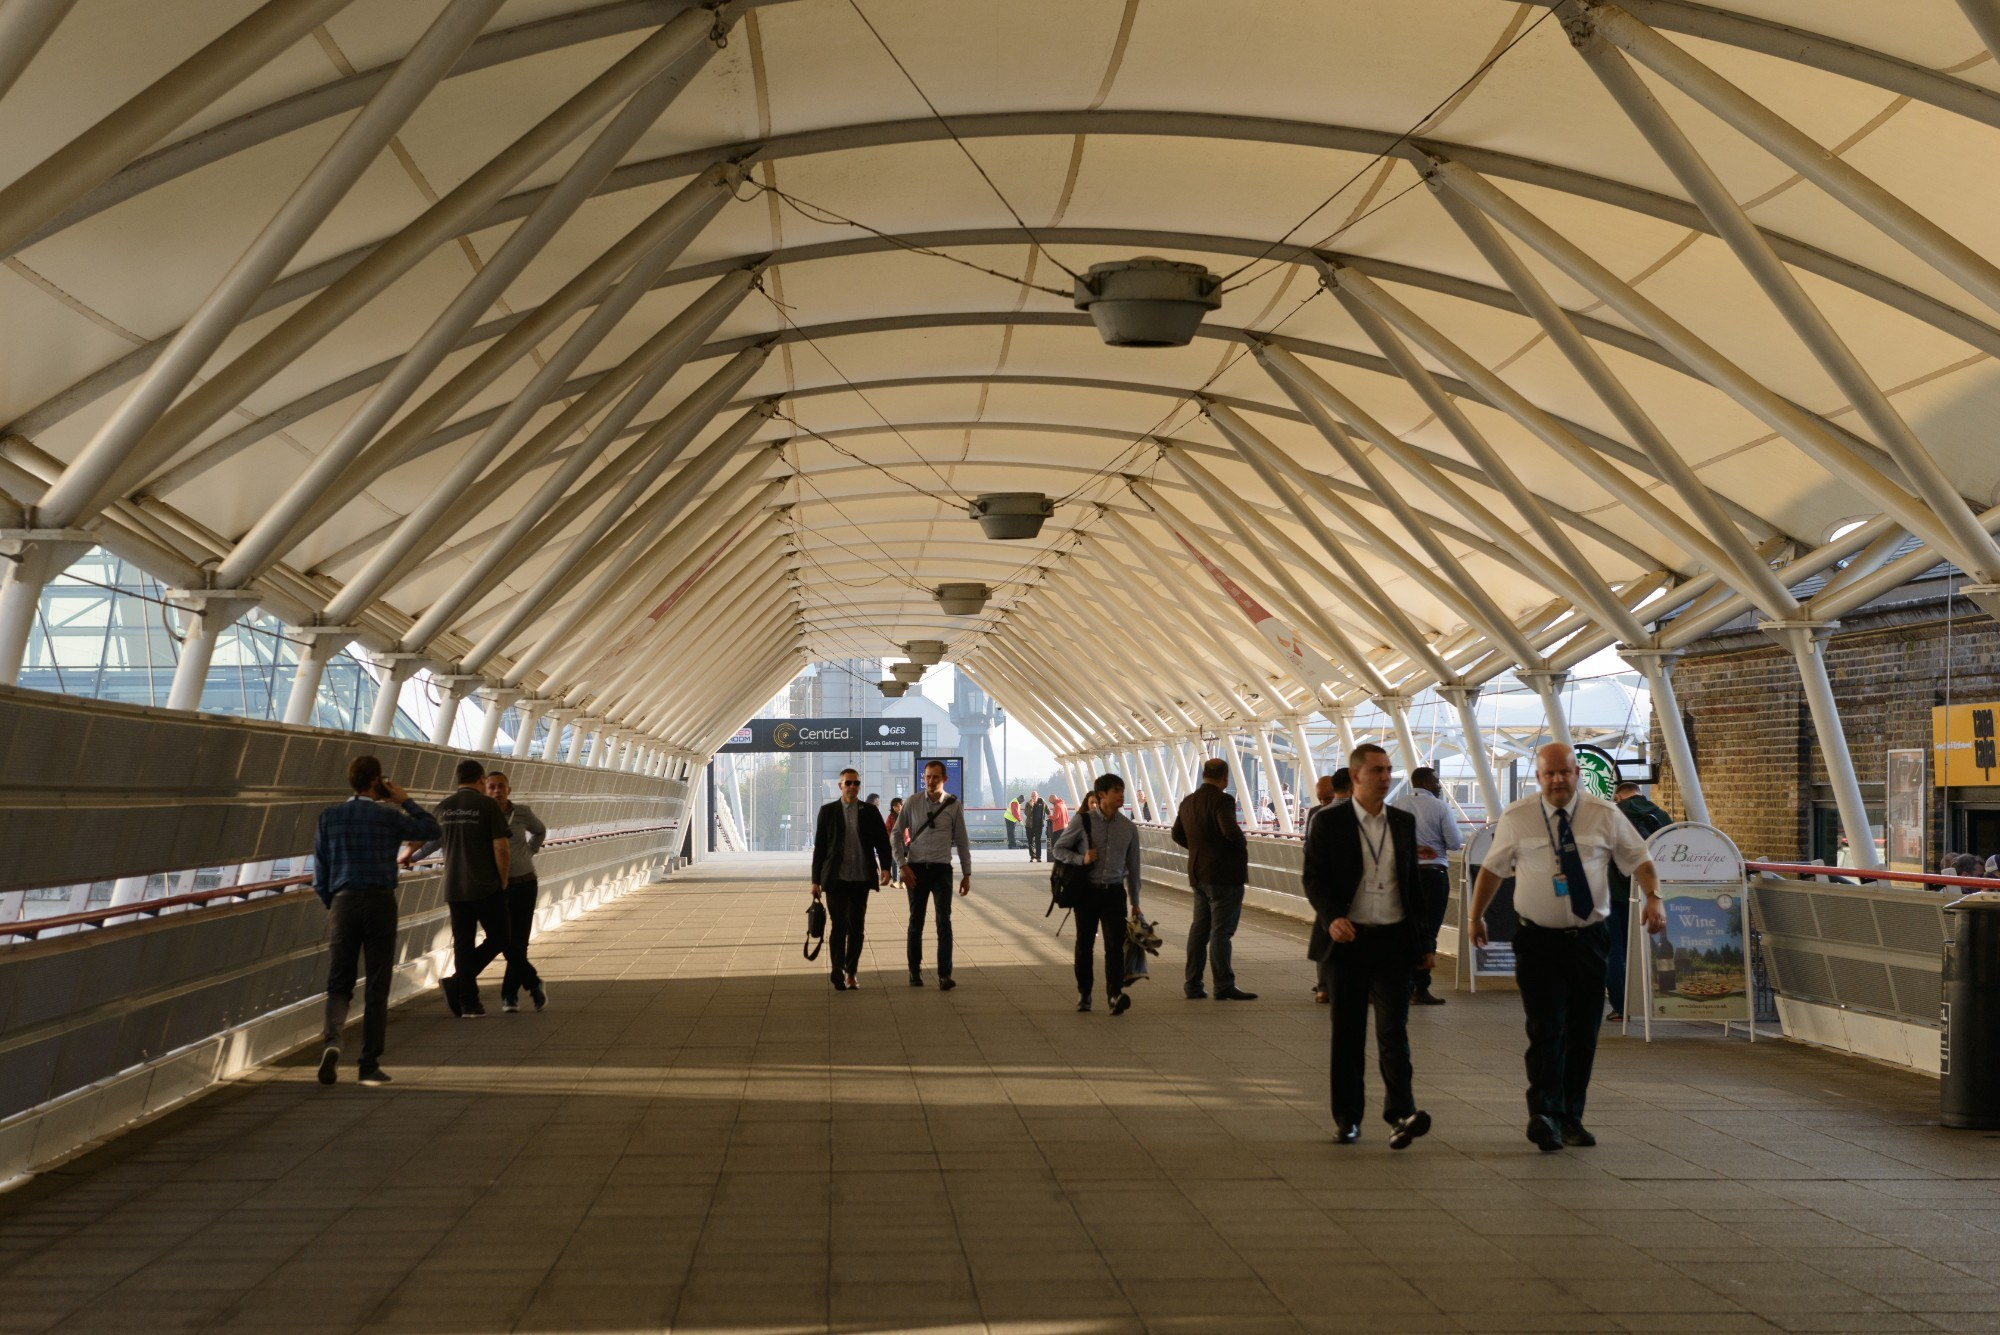 Covered walking leading from Custom House DLR to the ExCeL centre with a translucent canopy.